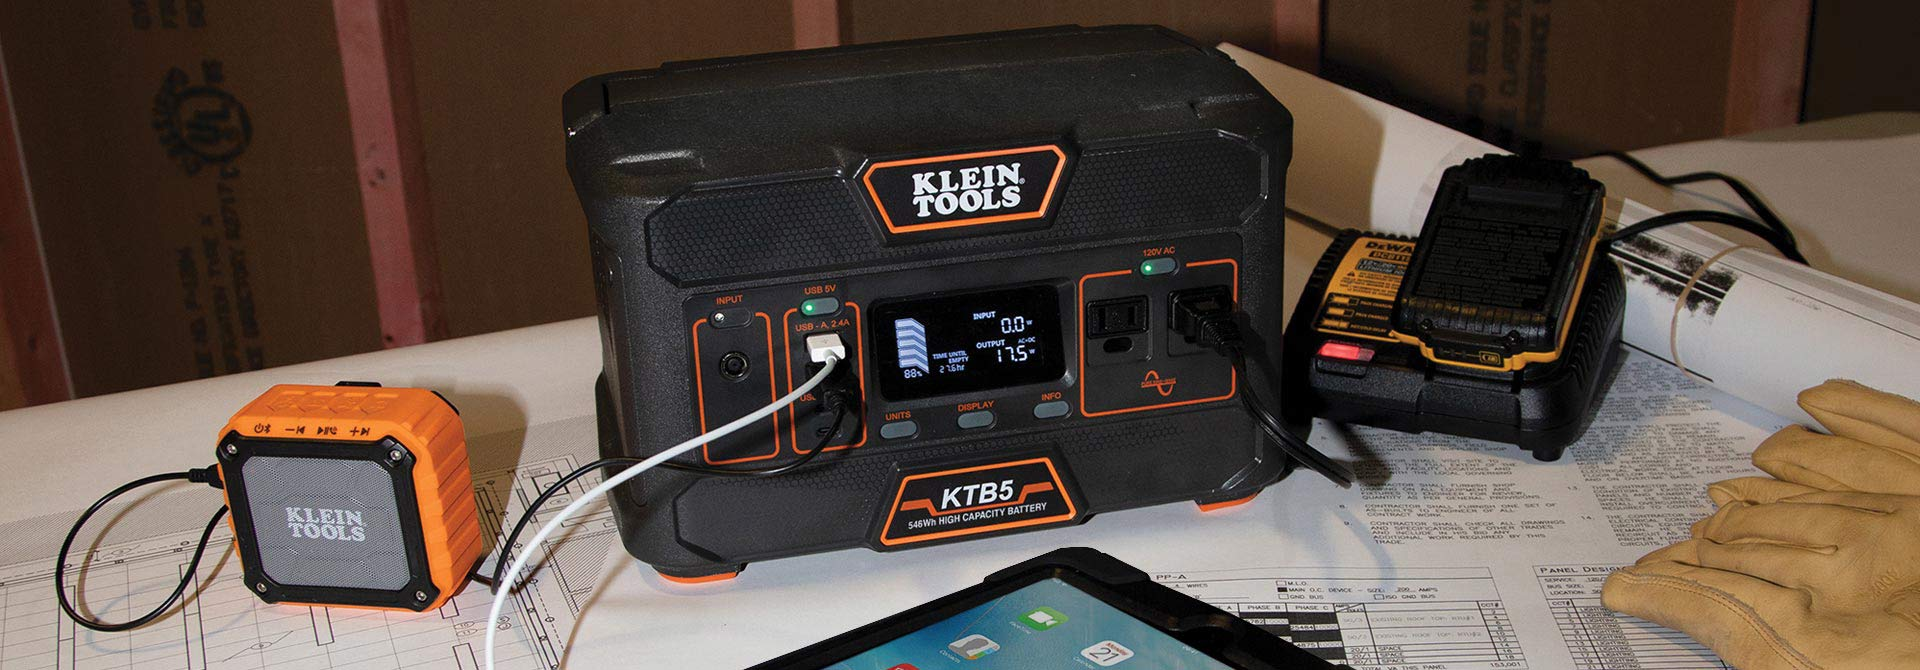 Portable \r\nPower Station